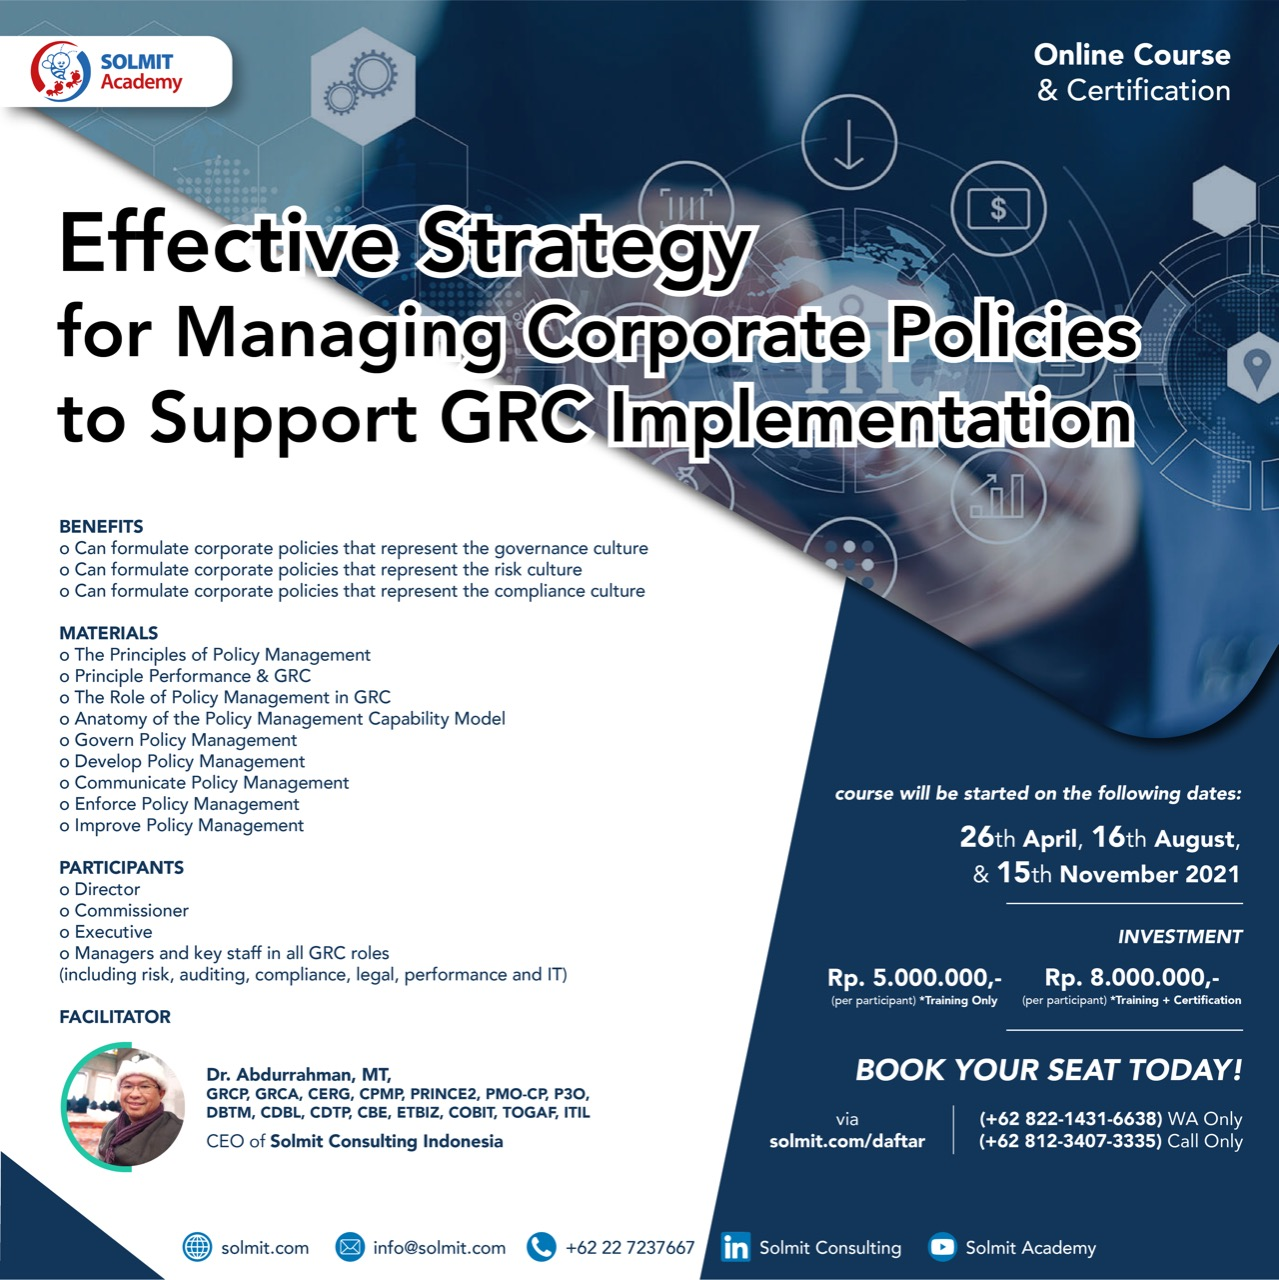 Online Course & Certification -  Effective Strategy for Managing Corporate Policies to Support GRC Implementation